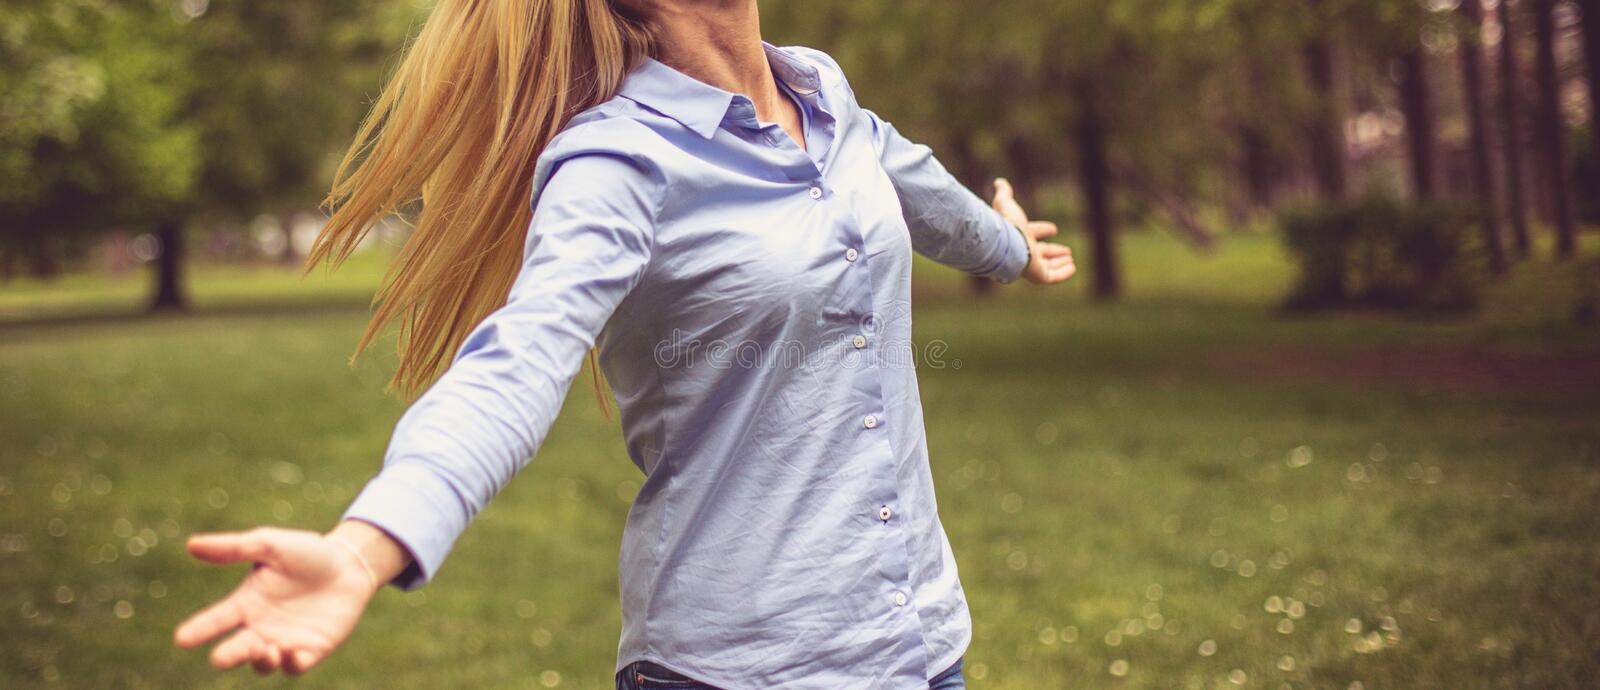 Fresh air and beauty of nature. royalty free stock images